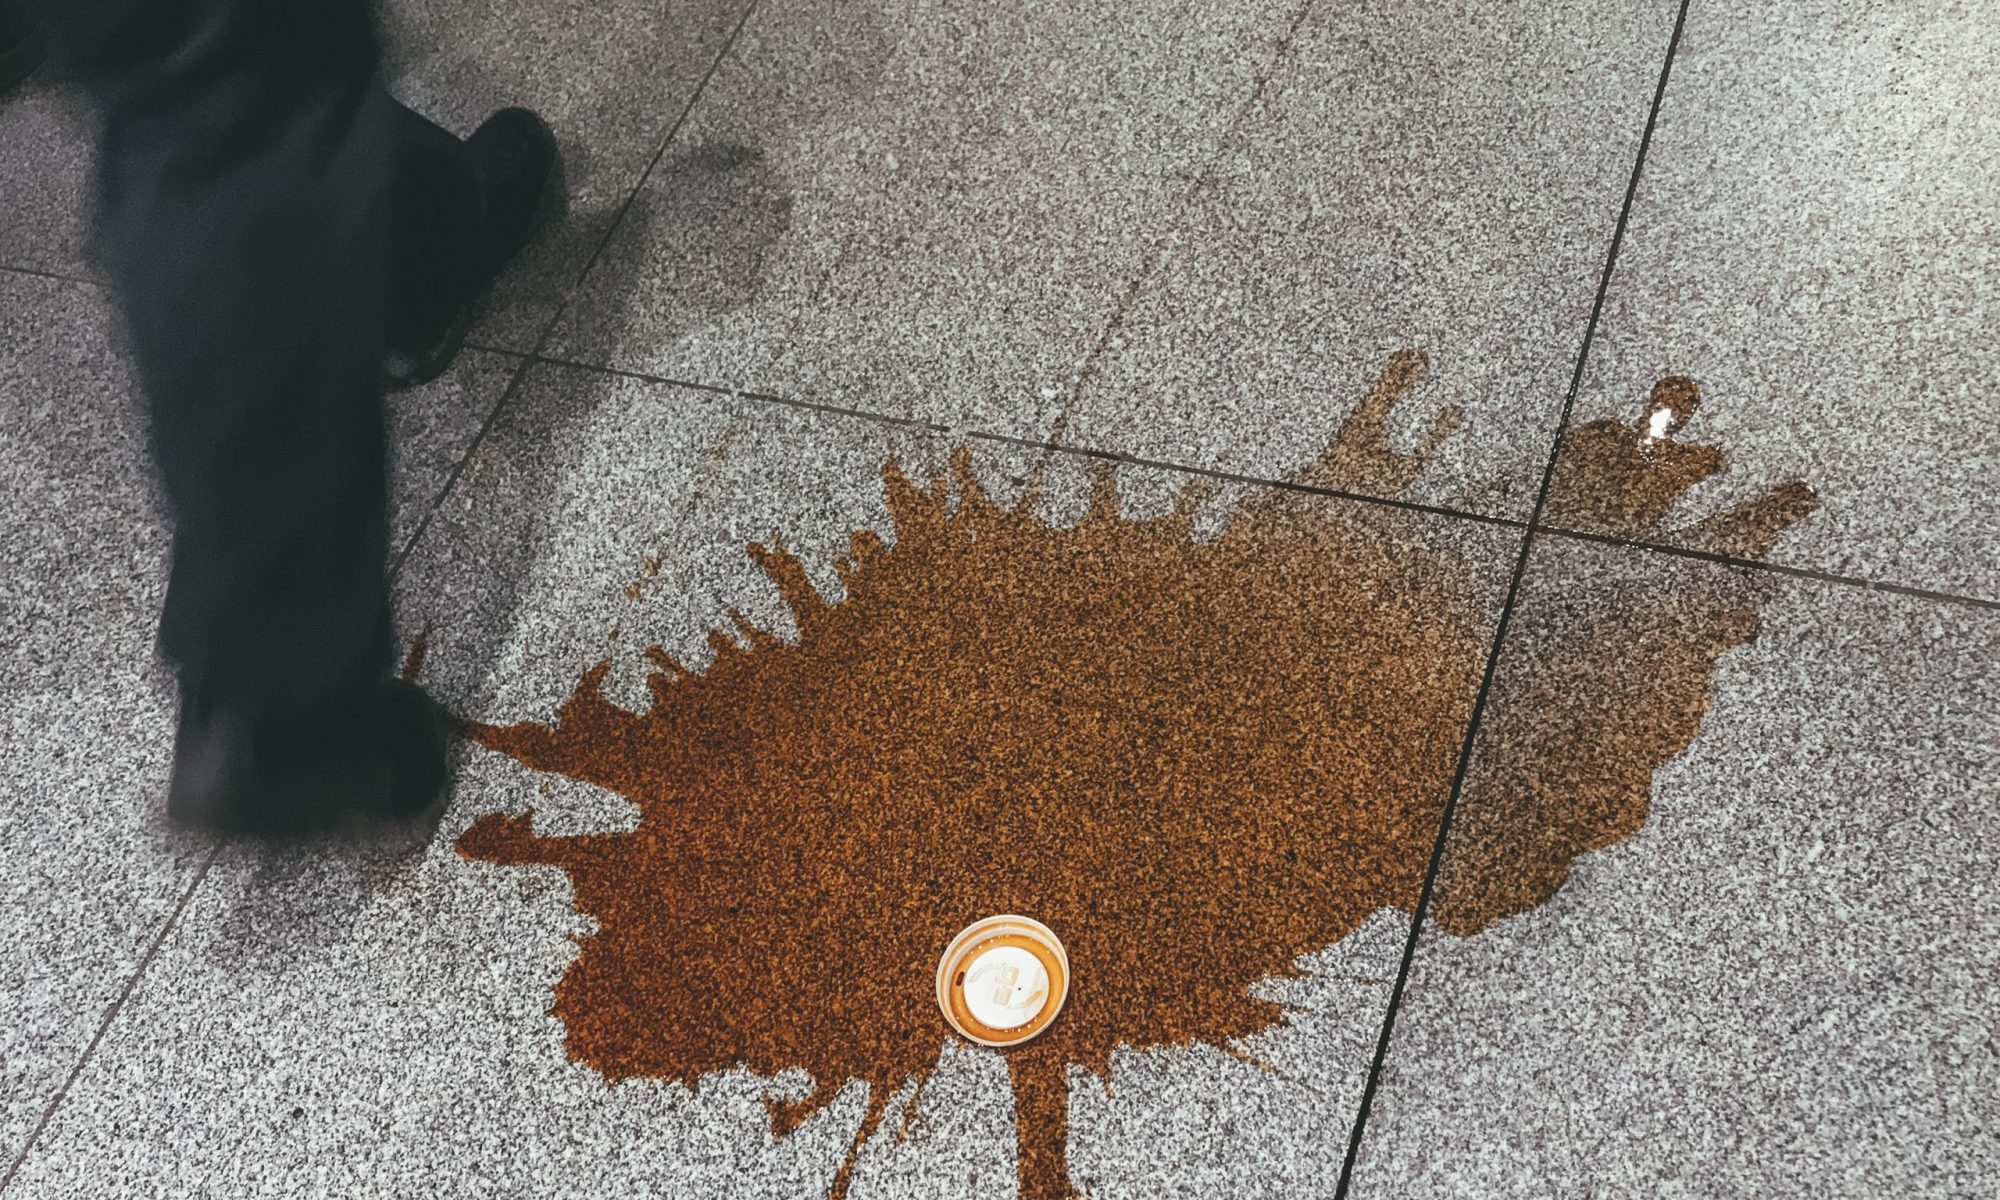 Spilled coffee photo by Kolar.io on Unsplash